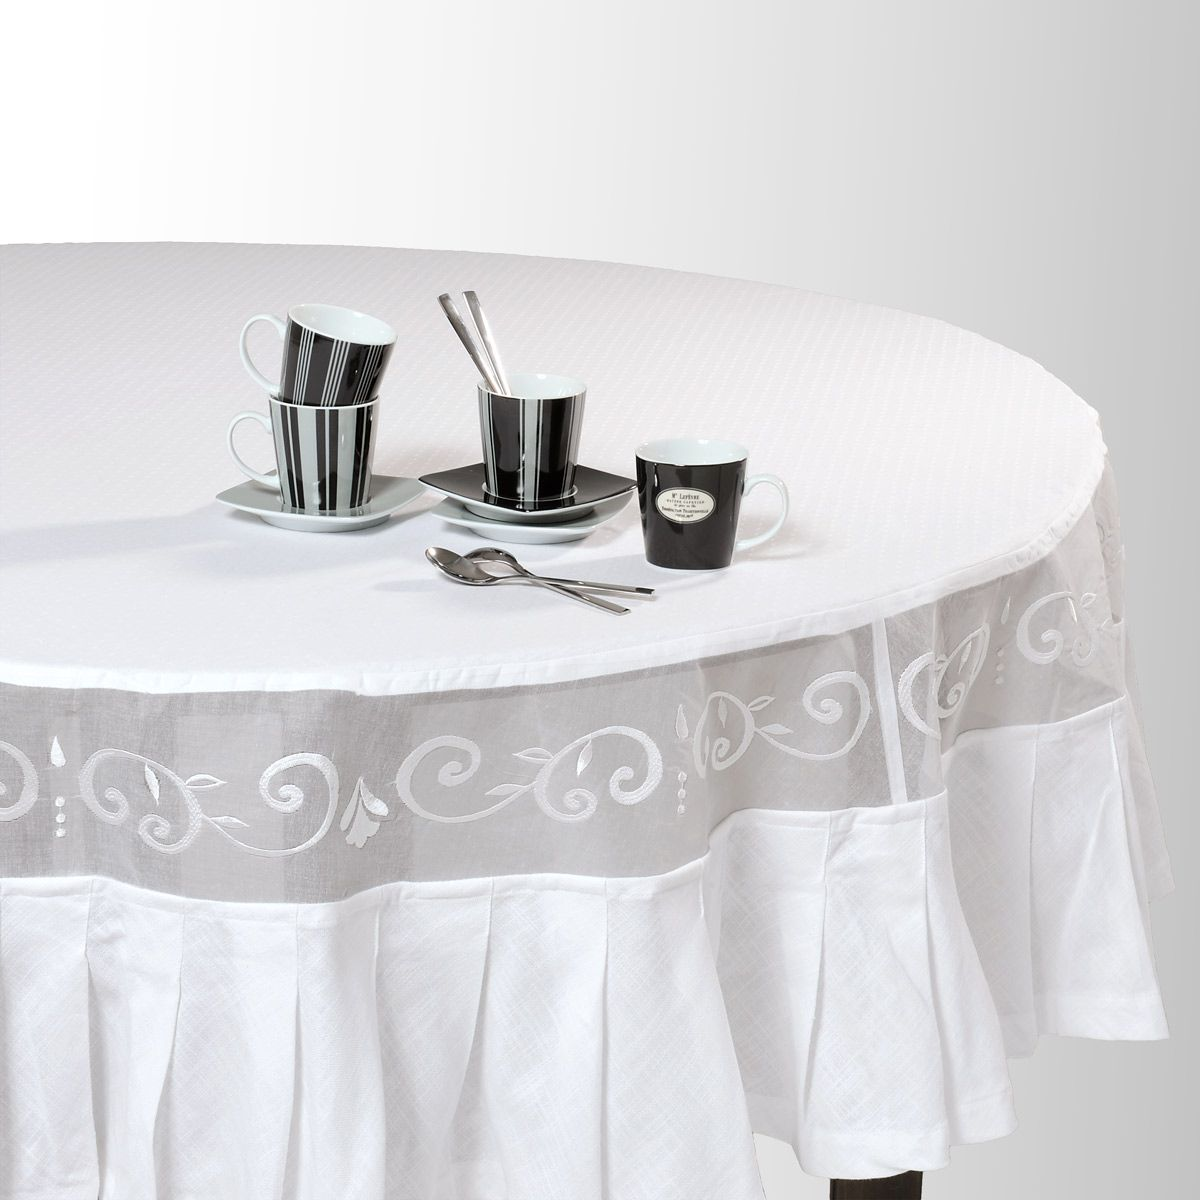 nappe ronde en coton blanche d 180 cm liste appartement. Black Bedroom Furniture Sets. Home Design Ideas